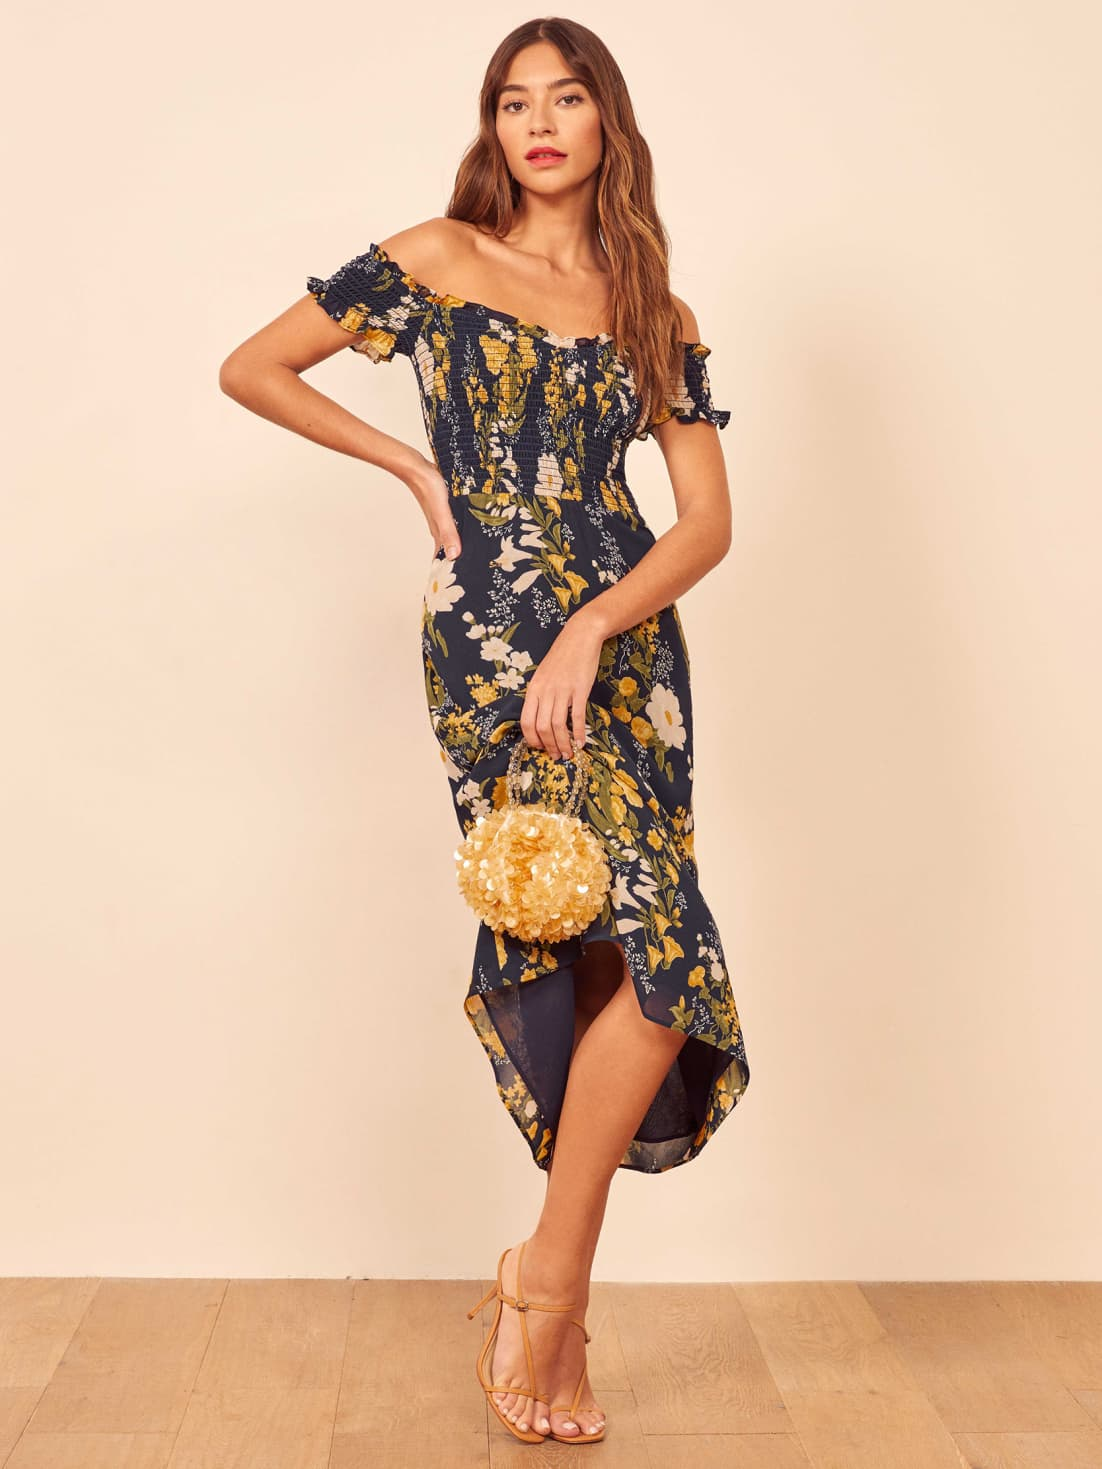 "robe noire à épaules dénudées avec des fleurs blanches et jaunes pour vos mariages d'automne ""width ="" 1102 ""height ="" 1469 ""data-pin-description ="" robe noire à épaules dénudées avec des fleurs blanches et jaunes pour vos mariages d'automne ""srcset ="" https://greenweddingshoes.com/wp-content/uploads/2019/09/murphy-dress.jpg 1102w, https://i0.wp.com/greenweddingshoes.com/wp-content/uploads/2019/09/murphy -dress.jpg? resize = 225,300 225w, https://i0.wp.com/greenweddingshoes.com/wp-content/uploads/2019/09/murphy-dress.jpg?resize=768,1024 768w, https: / /i0.wp.com/greenweddingshoes.com/wp-content/uploads/2019/09/murphy-dress.jpg?resize=800,1066 800w, https://i0.wp.com/greenweddingshoes.com/wp- content / uploads / 2019/09 / murphy-dress.jpg? resize = 400,533 400w, https://i0.wp.com/greenweddingshoes.com/wp-content/uploads/2019/09/murphy-dress.jpg?resize = 300,400 300w ""tailles ="" (largeur max: 1102px) 100vw, 1102px ""/><br />Robe Murphy par Reformation // 278 $</p> <h4 style="